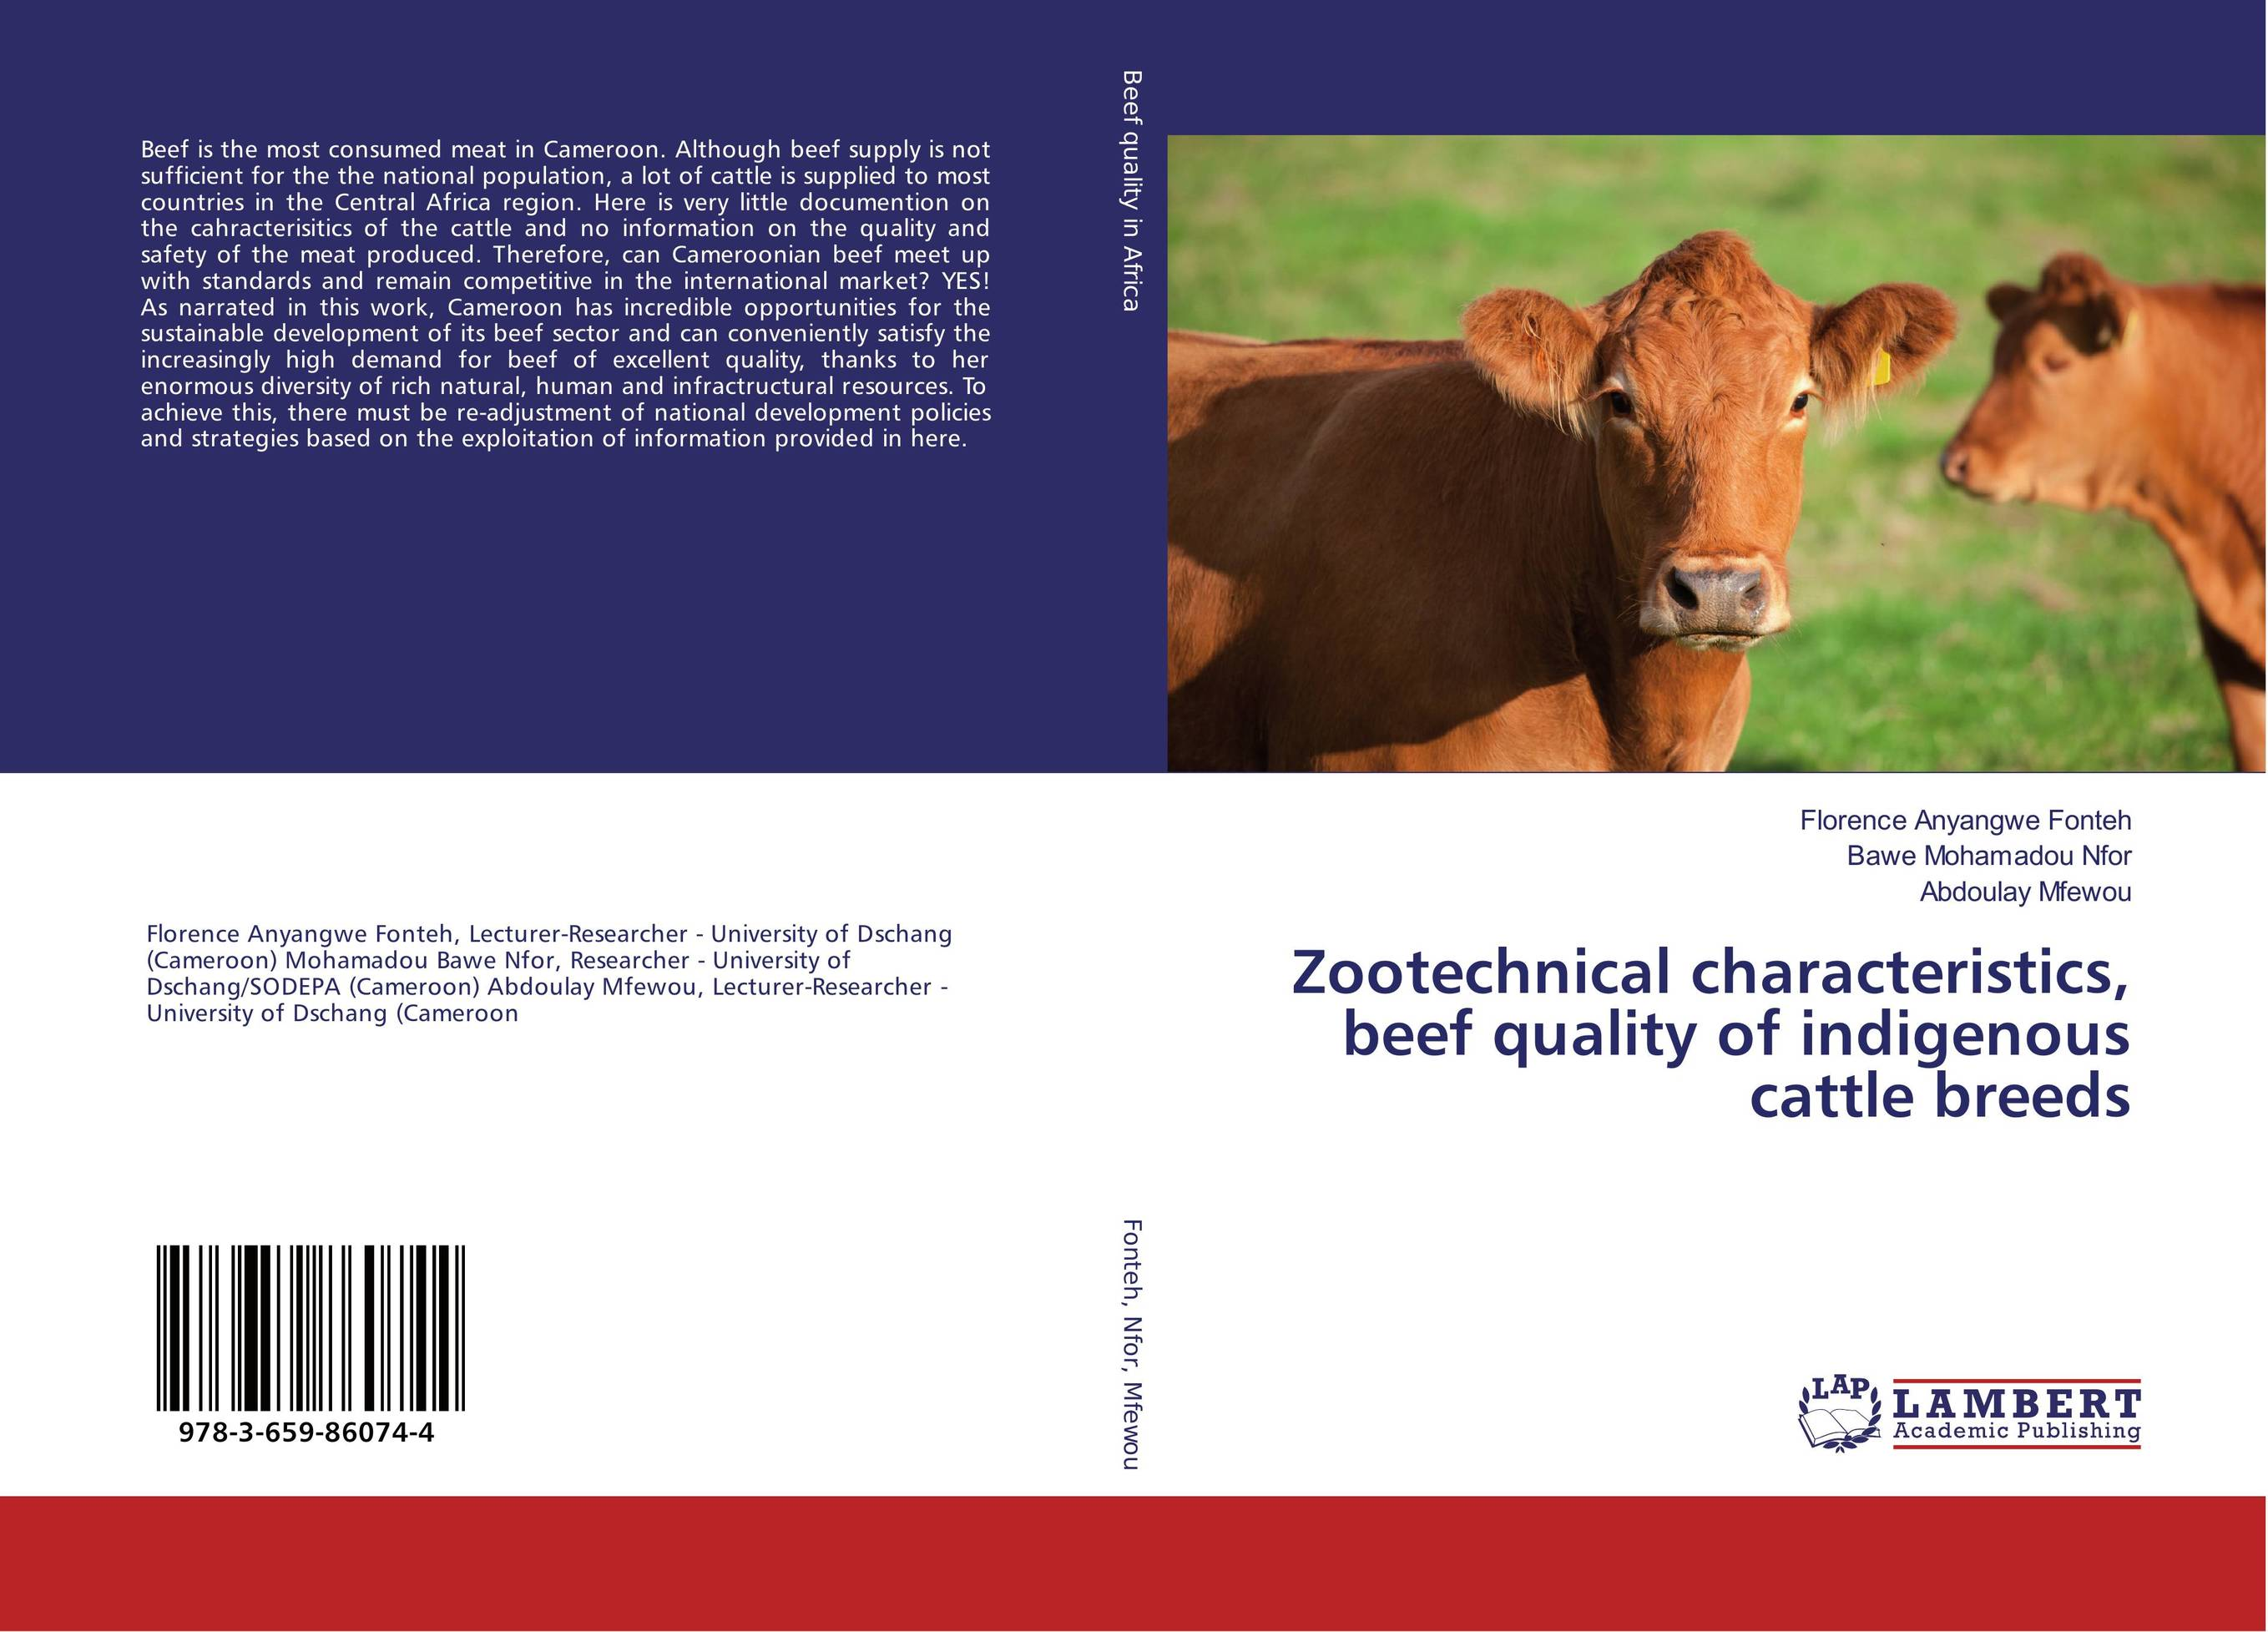 Zootechnical characteristics, beef quality of indigenous cattle breeds population dynamics of ticks on cattle in asia and africa